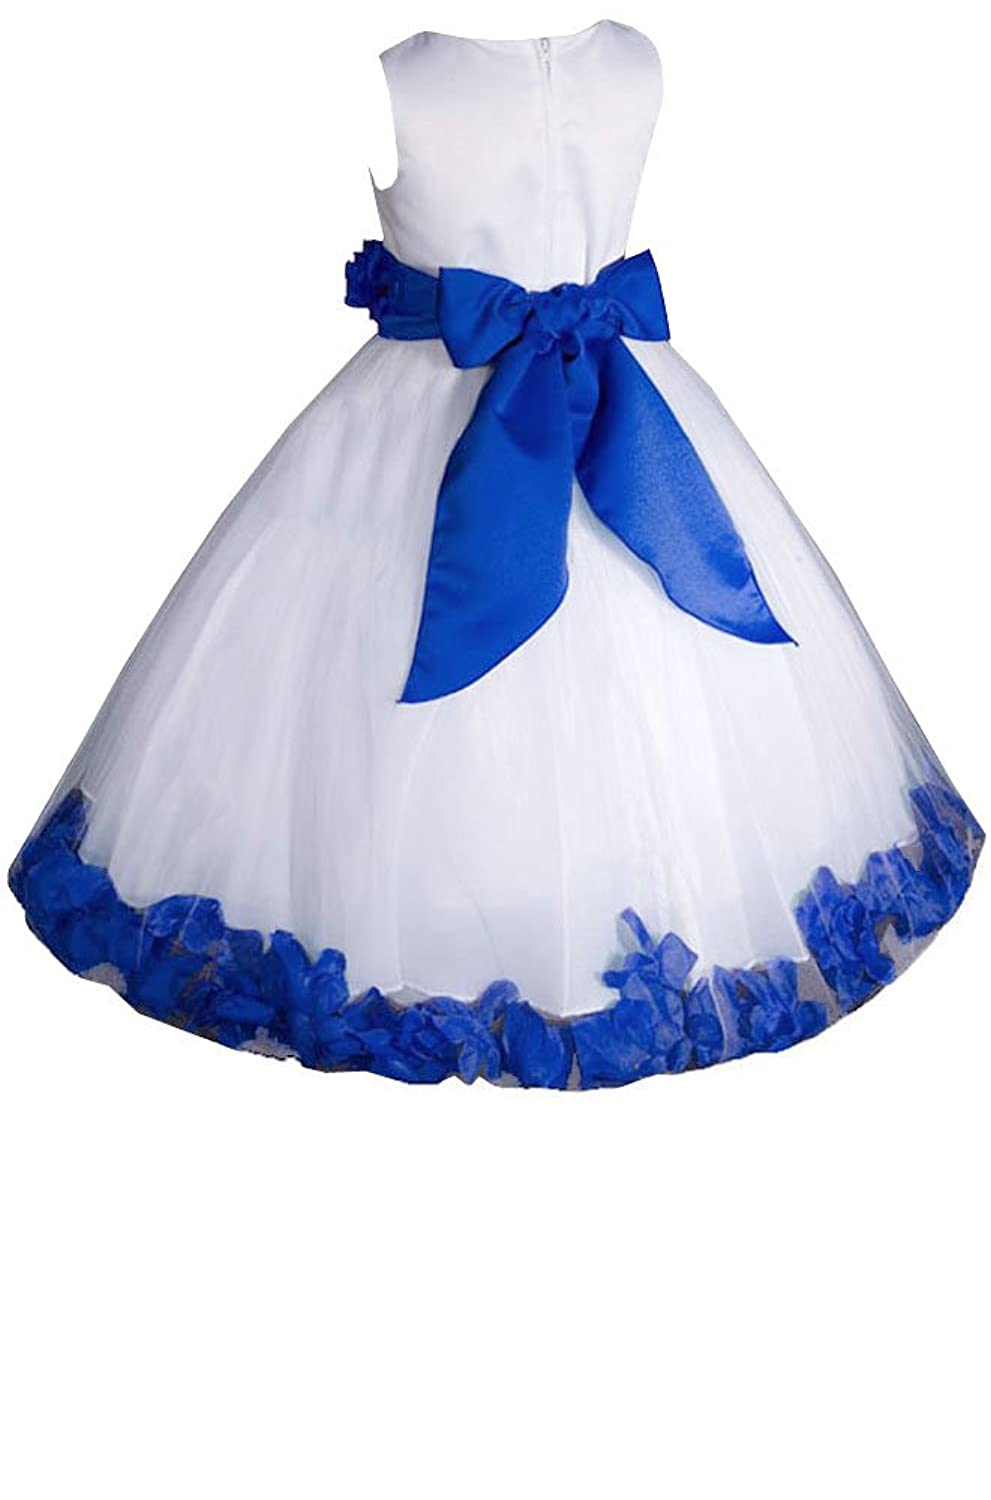 Amazon amj dresses inc baby girls whiteroyal blue flower girl amazon amj dresses inc baby girls whiteroyal blue flower girl pageant dress size l special occasion dresses clothing izmirmasajfo Image collections